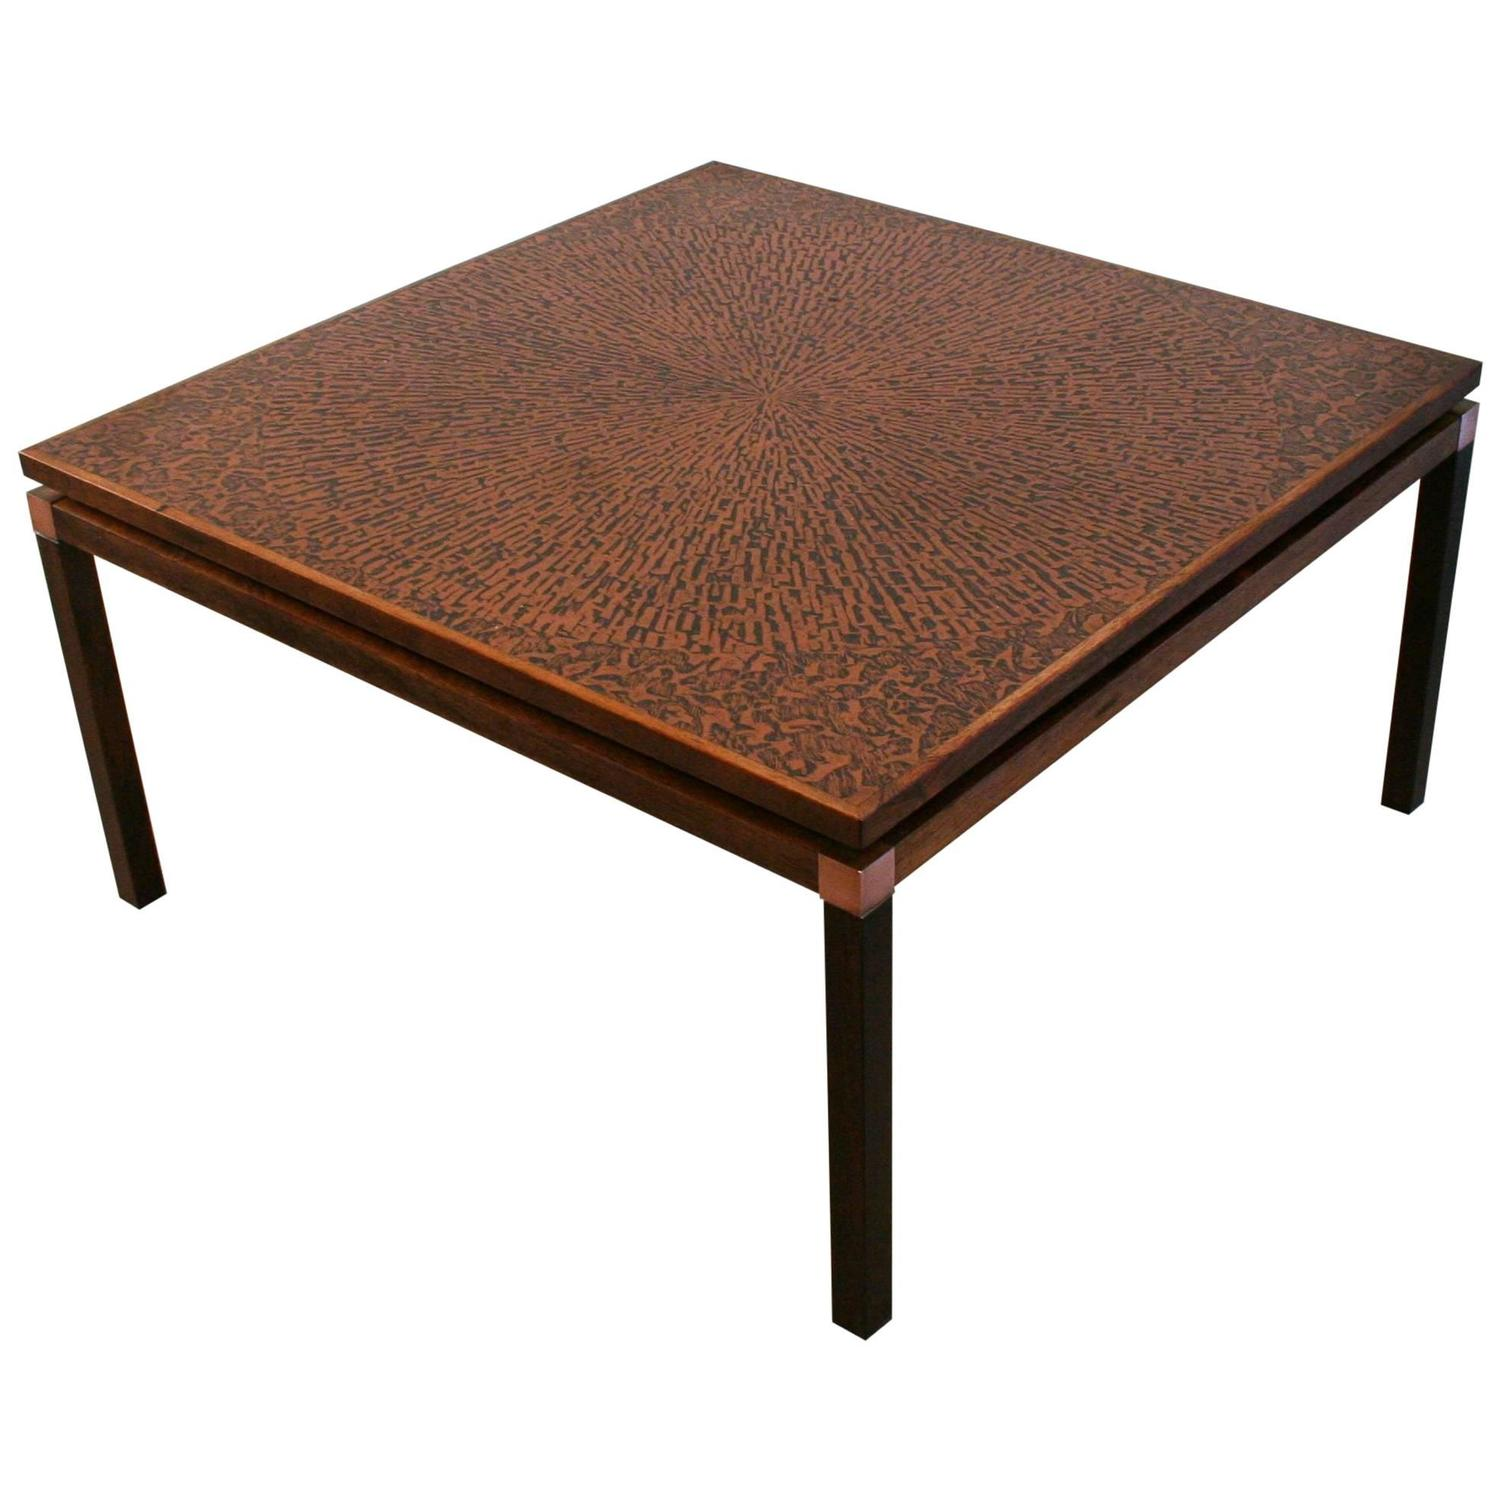 Vintage danish copper and rosewood coffee table at 1stdibs geotapseo Gallery